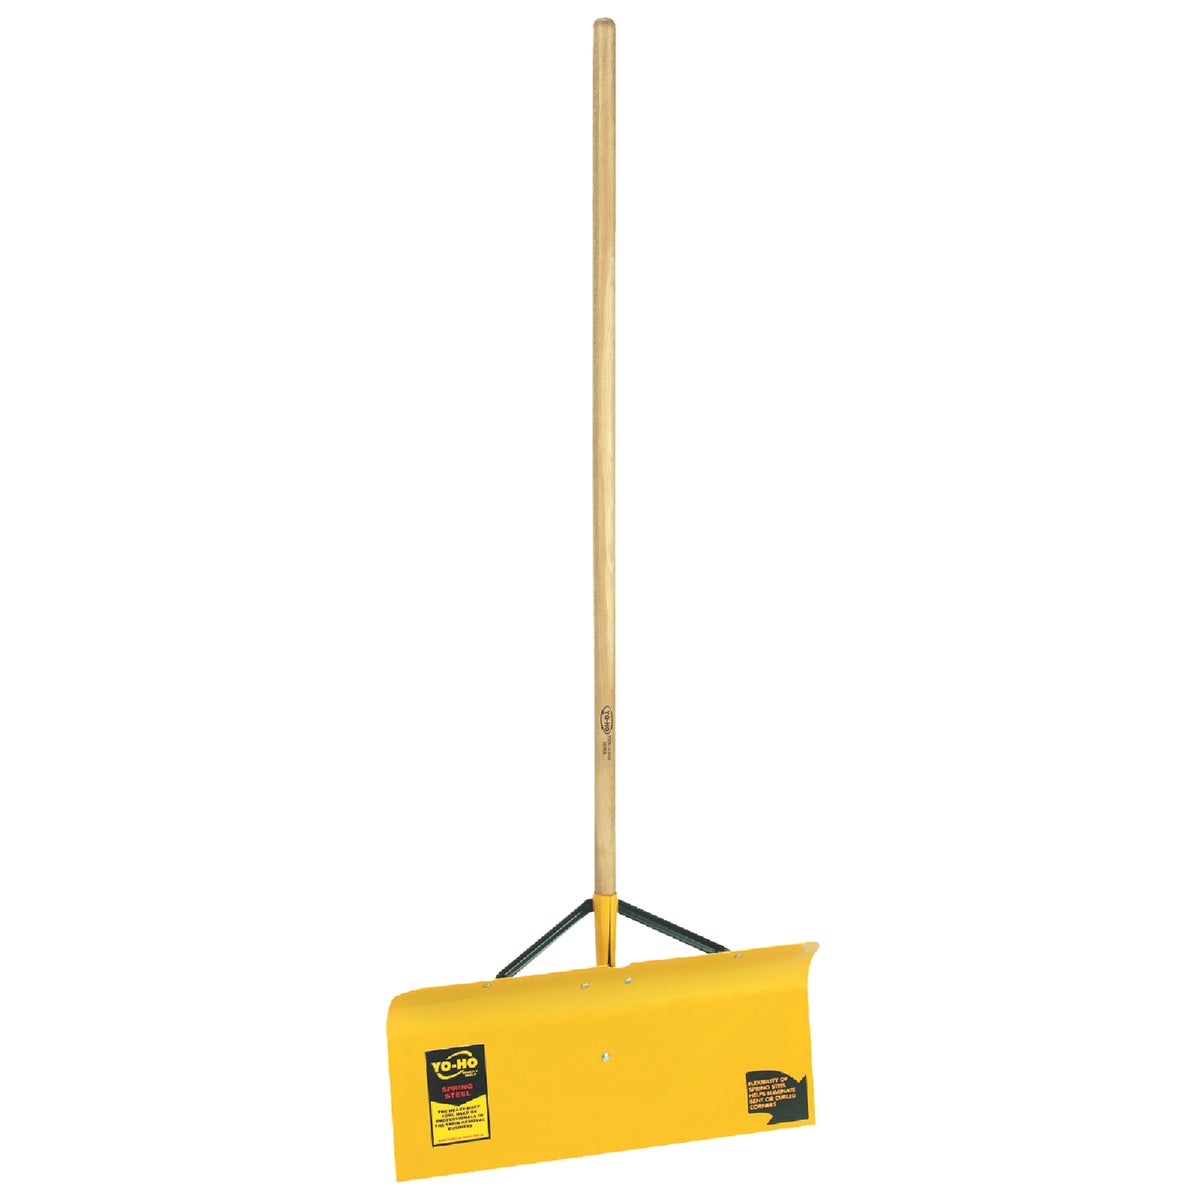 "24""BRACE STL SNOW PUSHER - 4040 by Yeoman & Company"